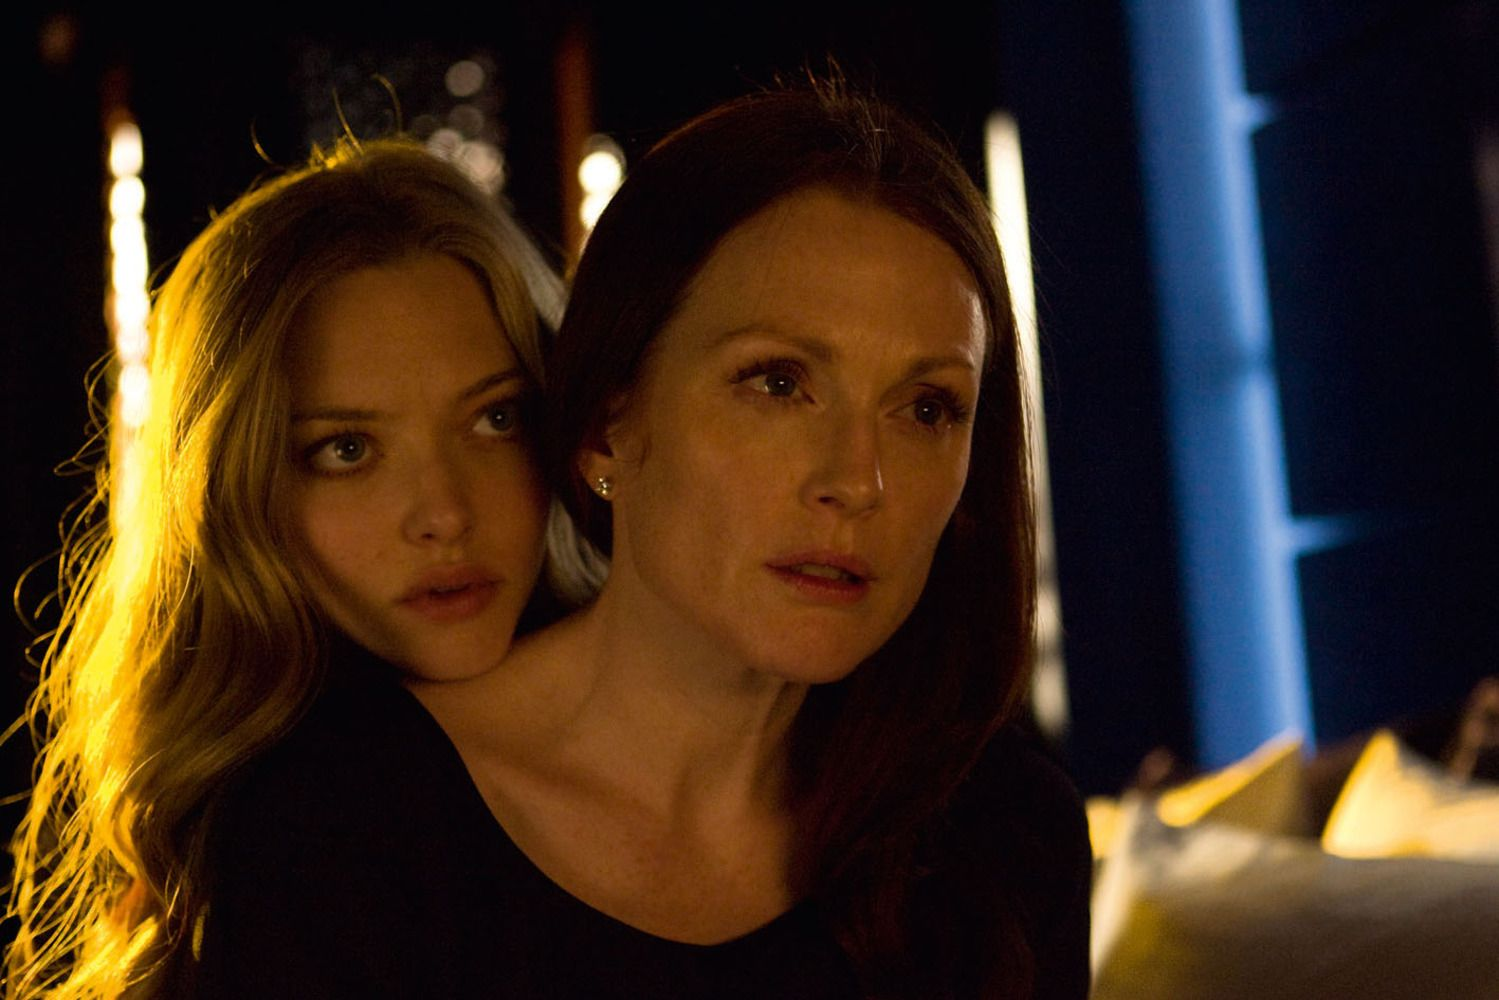 Amanda Seyfried Chloe Scene amanda seyfried and julianne moore in chloe (2009) - a